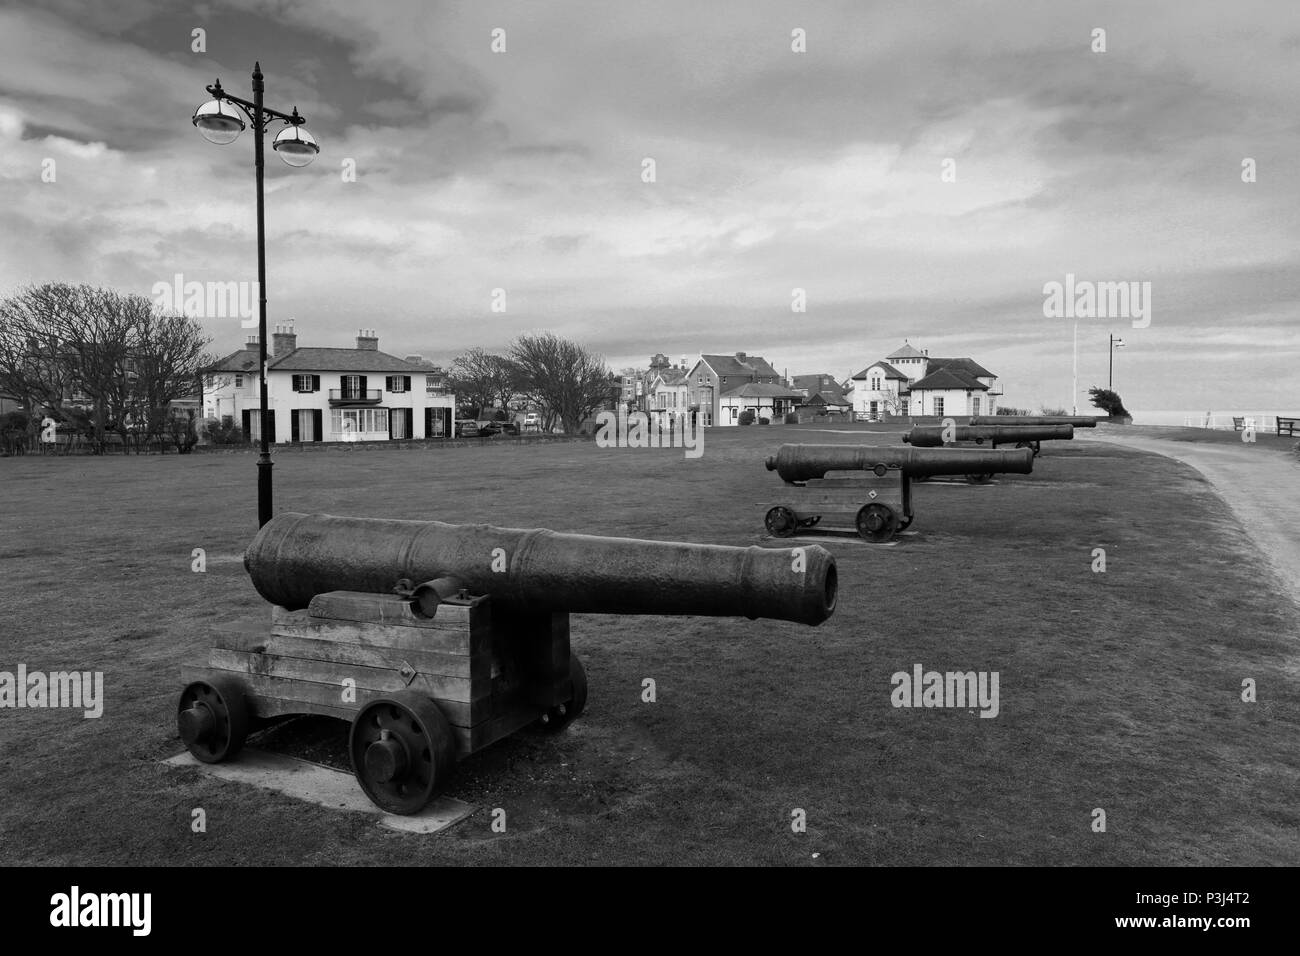 Canons at Gun Hill, promenade, Southwold town, Suffolk County, England, UK - Stock Image